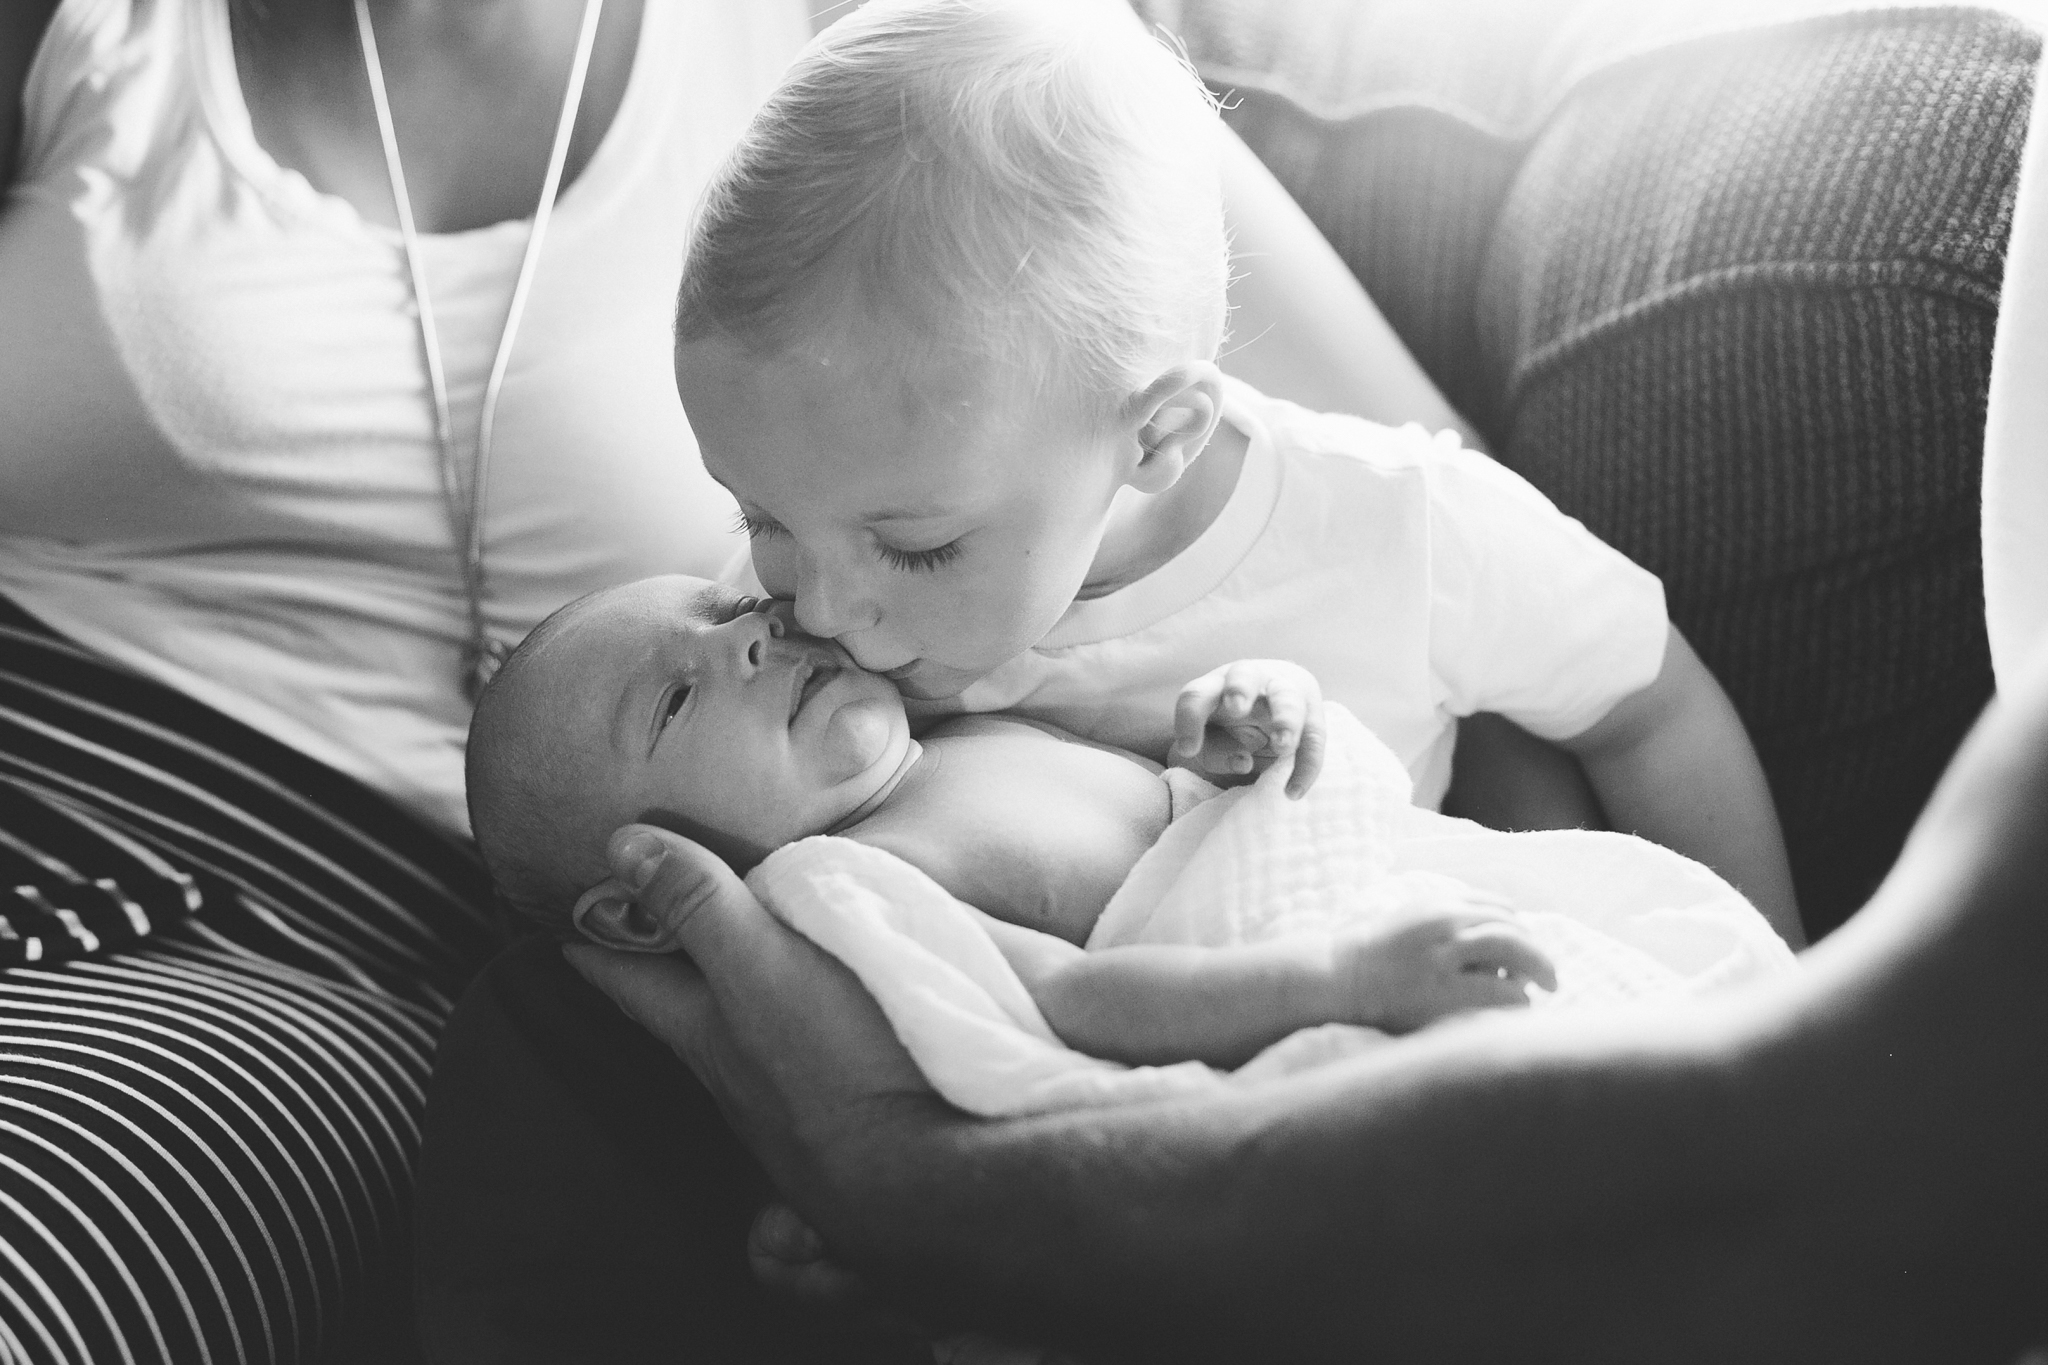 lethbridge-birth-photographer-love-and-be-loved-photography-daxon-newborn-picture-image-photo-26.jpg